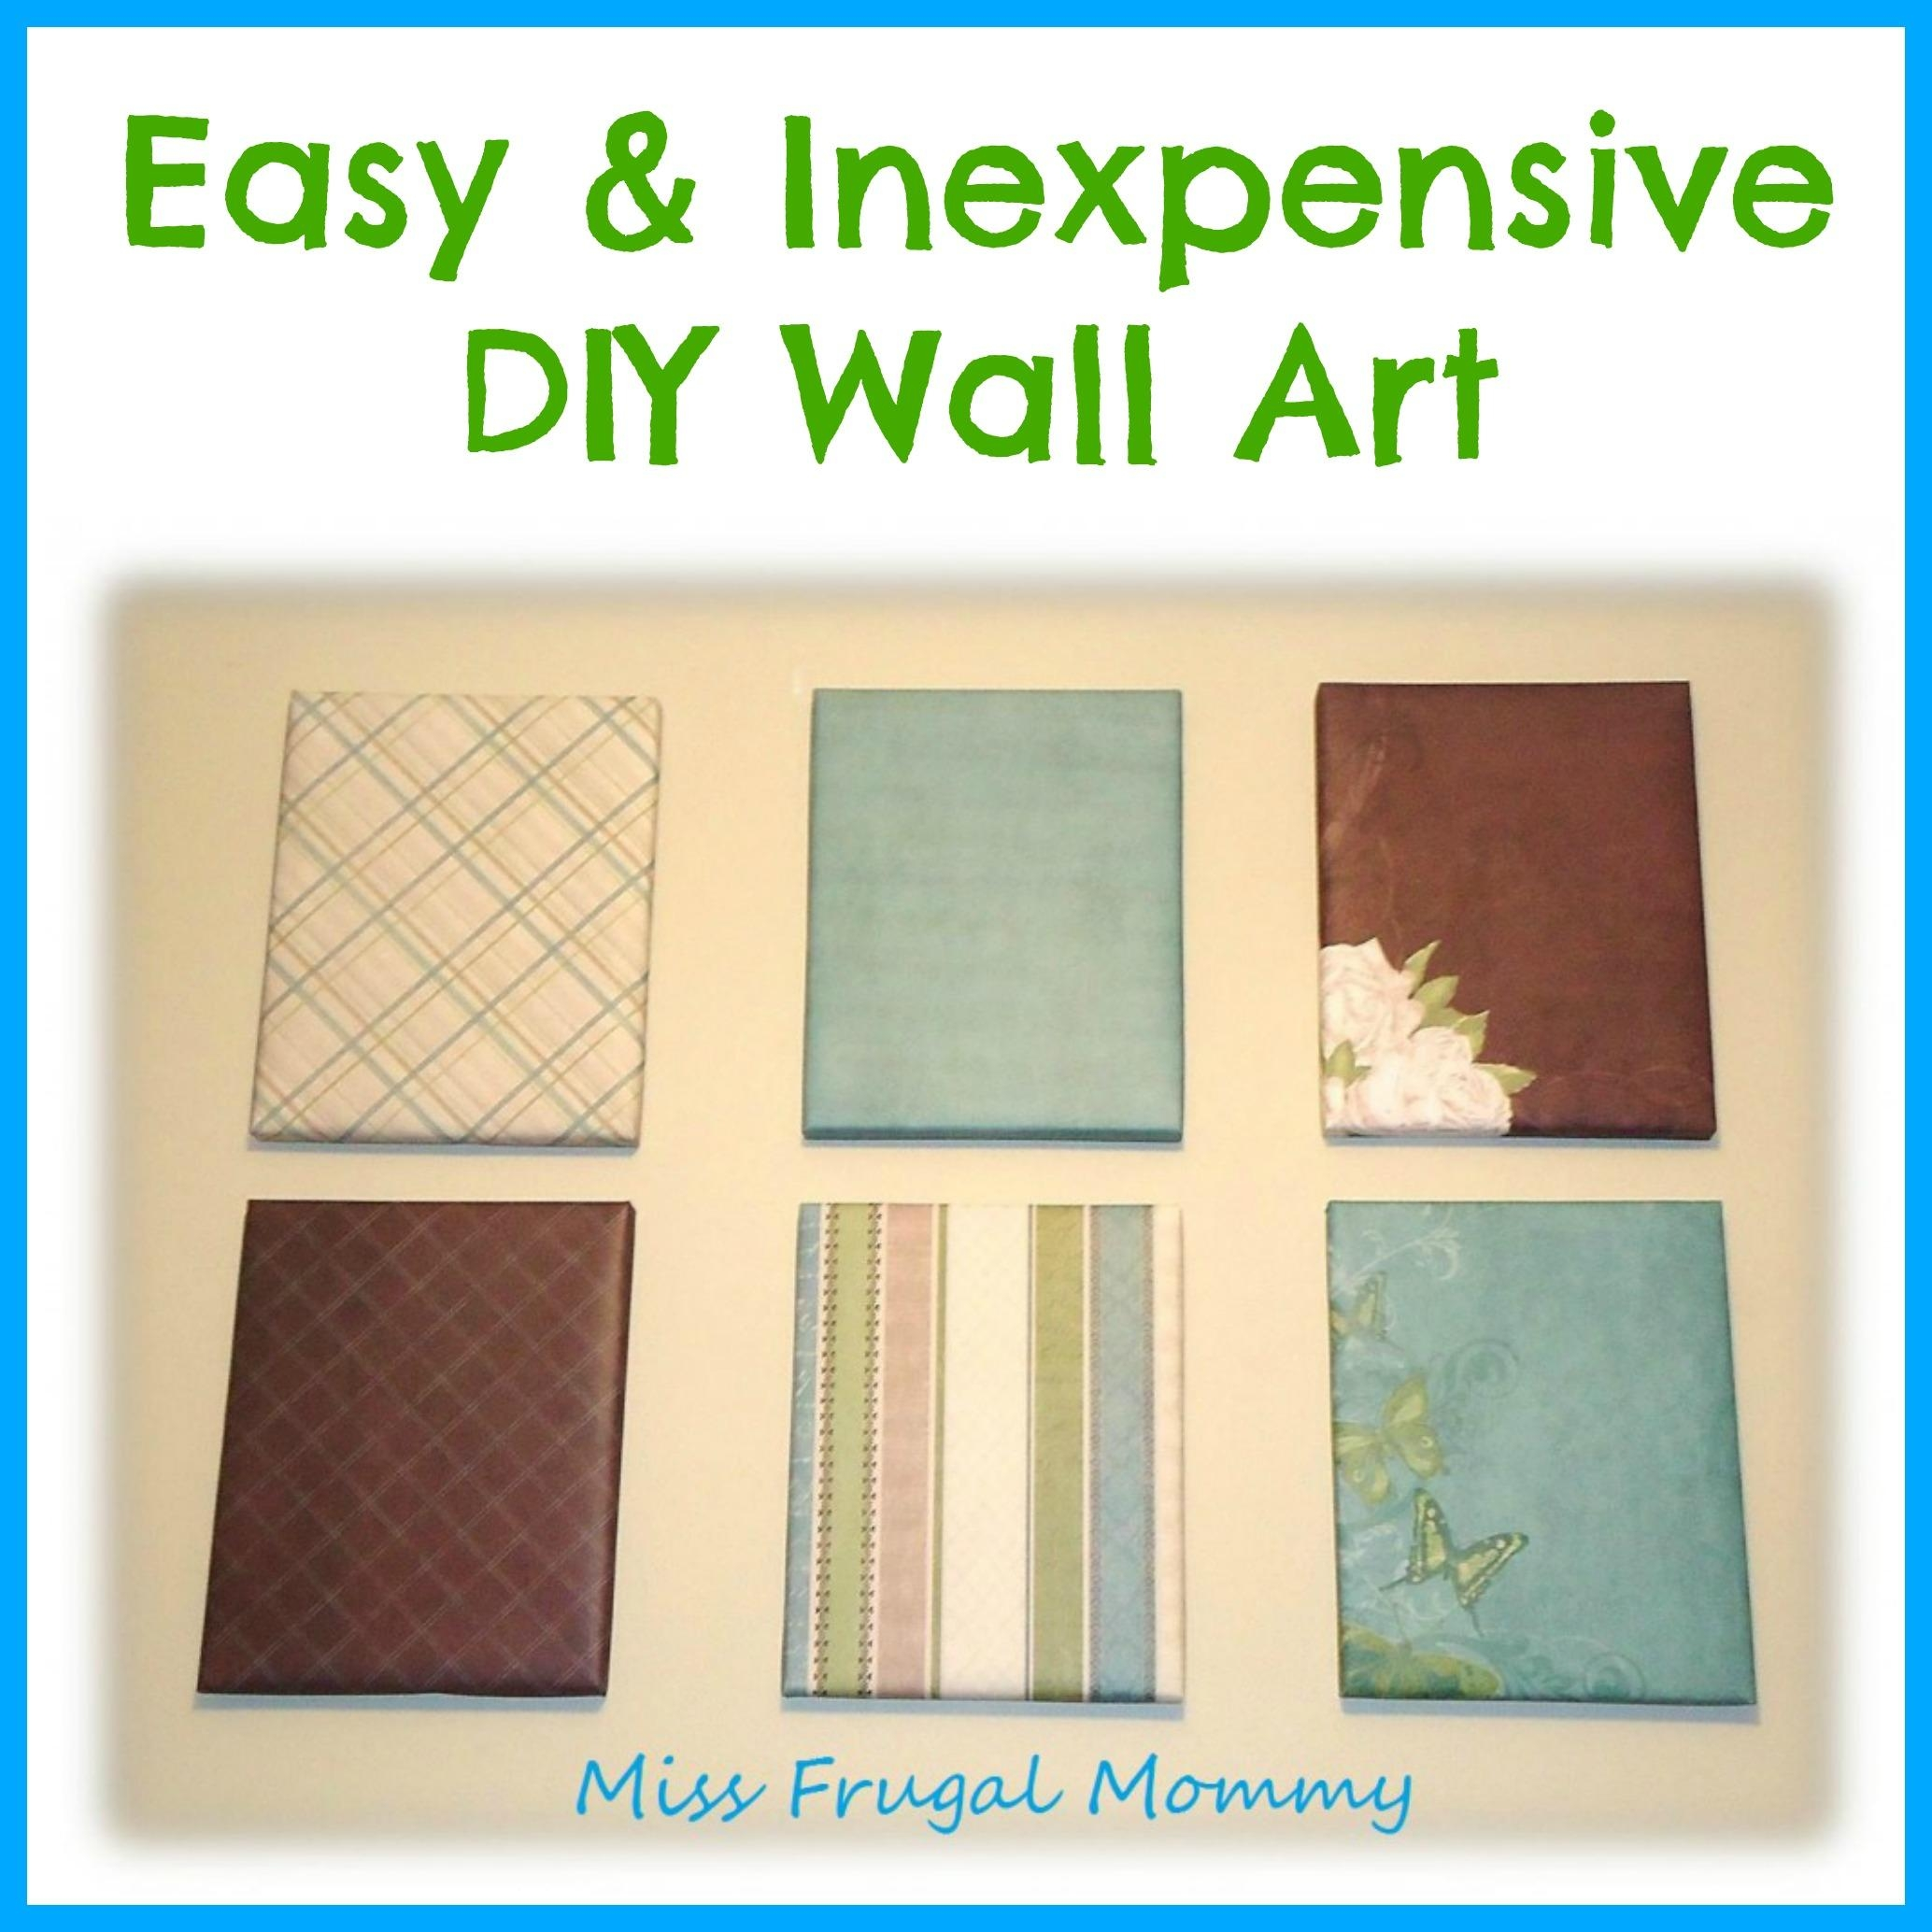 Pinterest Diy Wall Art | Living Room Ideas Intended For Pinterest Diy Wall Art (View 5 of 20)